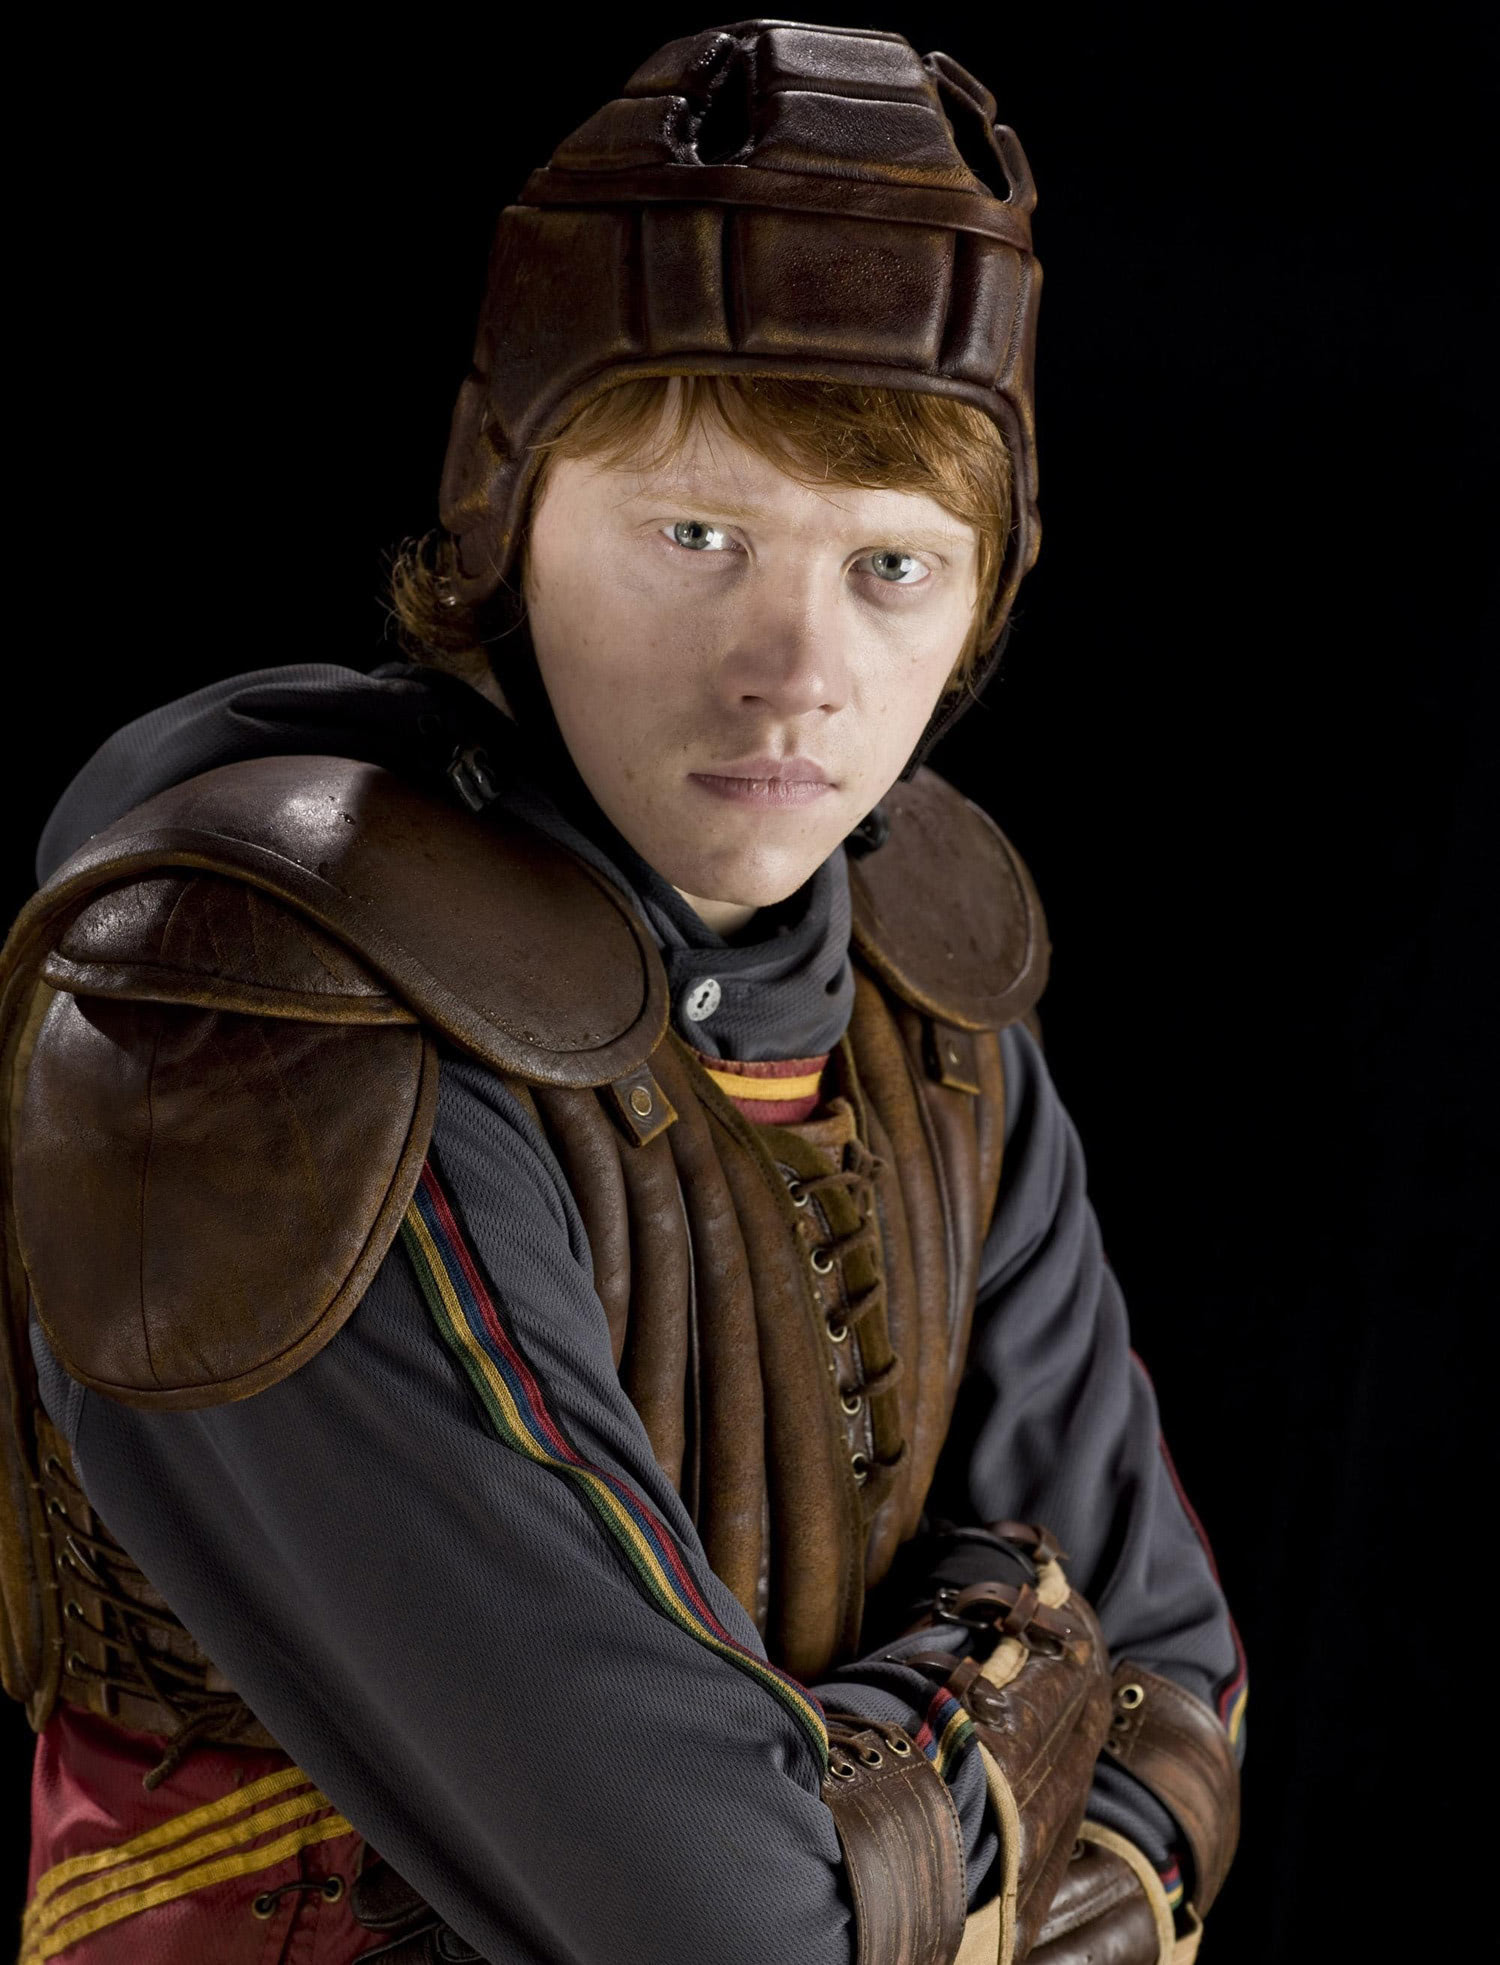 Portrait of Ron Weasley in Quidditch robes